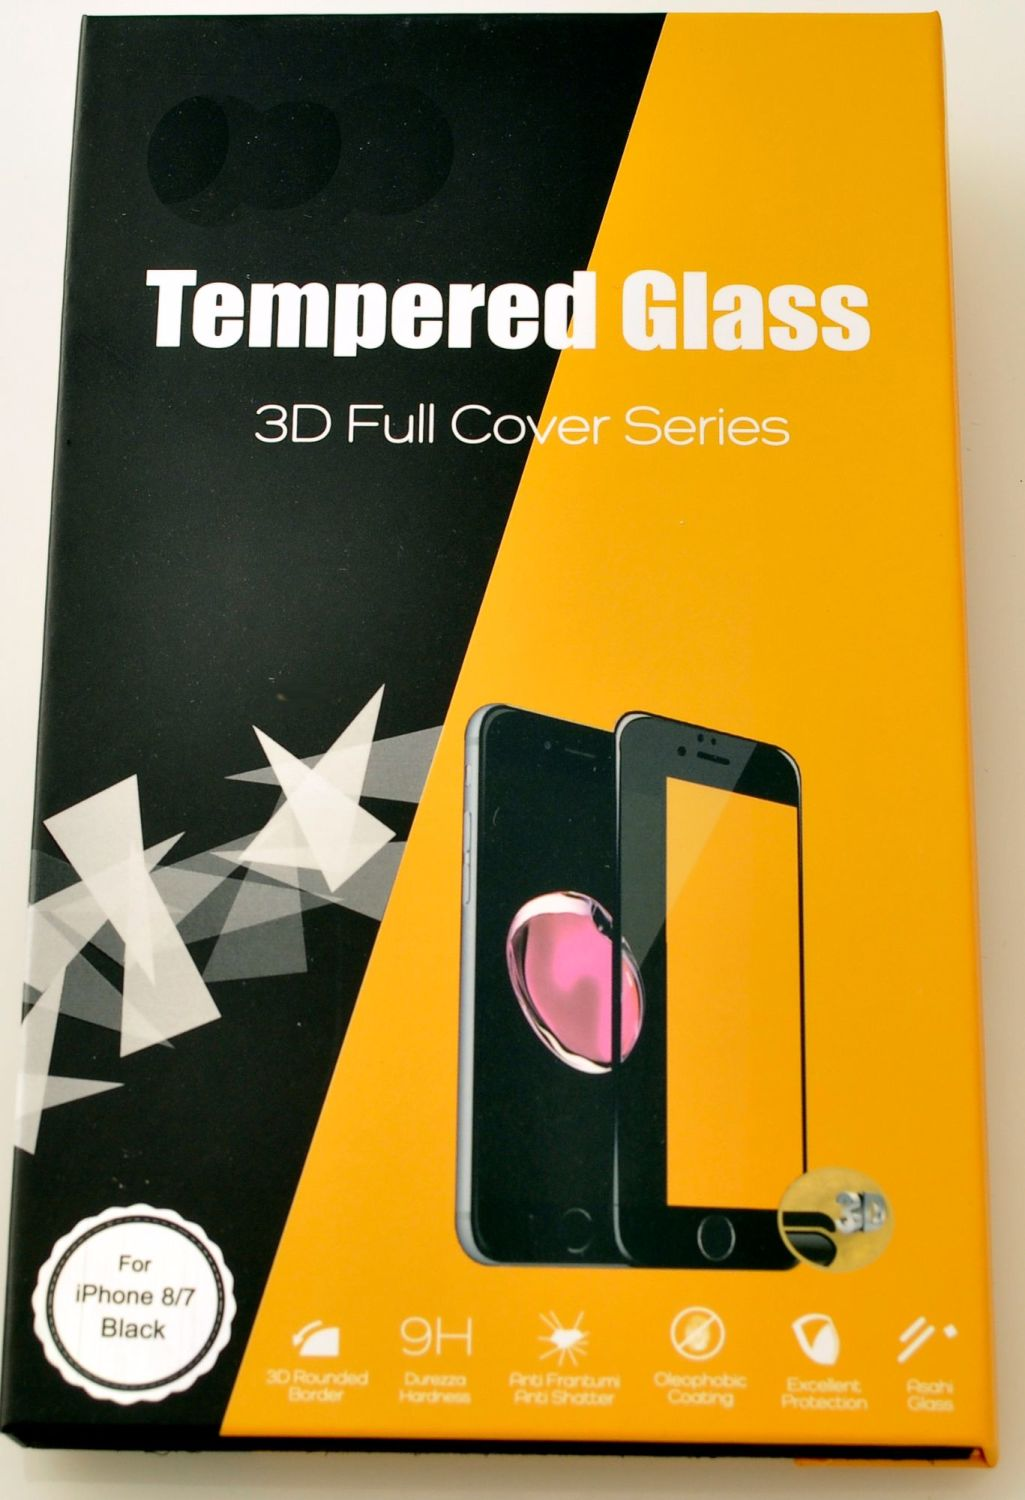 Tempered Glass 3D Cover for iPhone 8 / 7. #TGC-3D-8/7